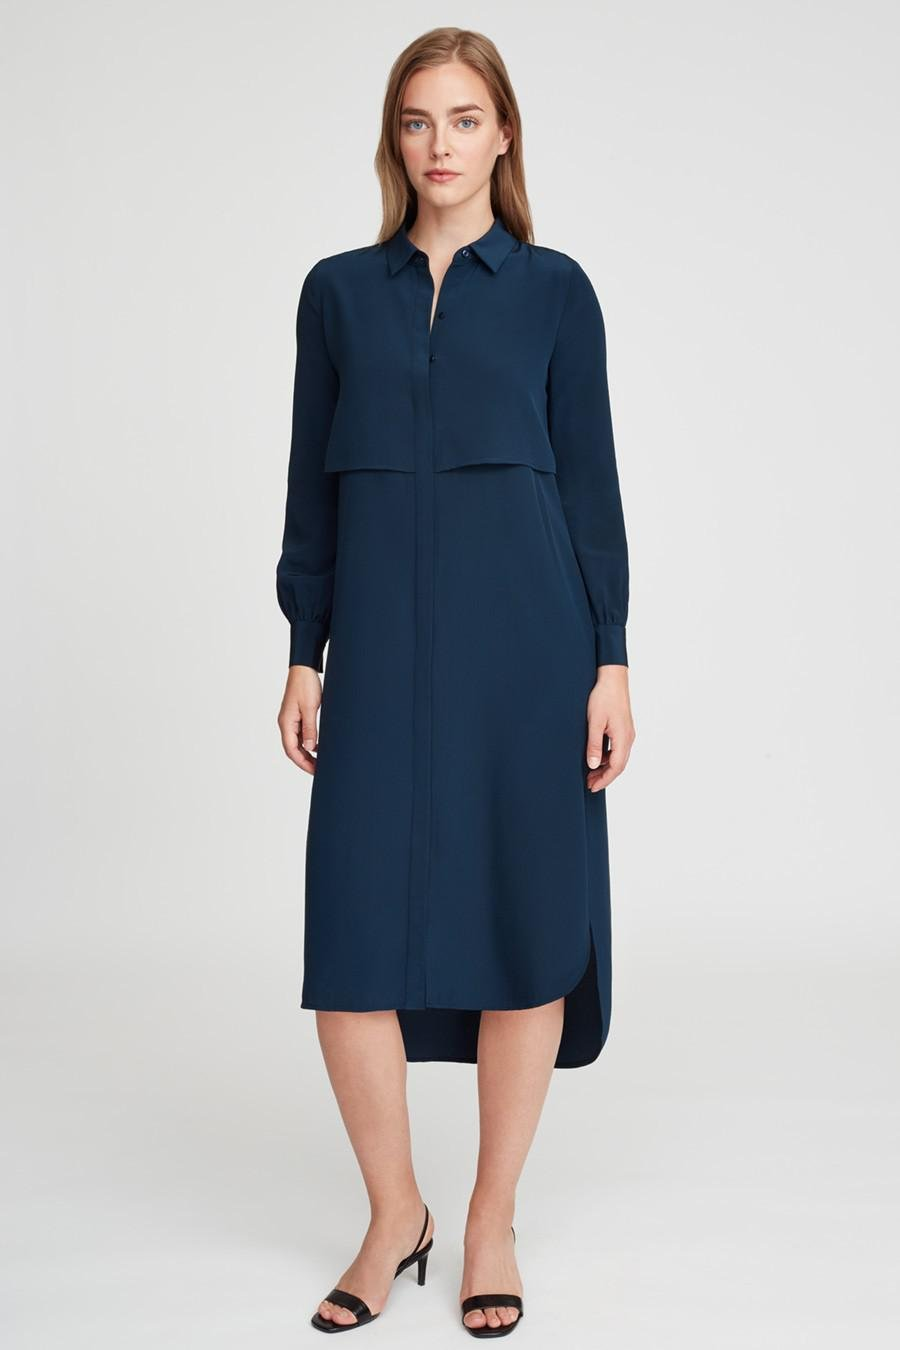 Women's Silk High-Low Shirt Dress in Navy   Size: Large   3 Ply Crepe Silk by Cuyana 1